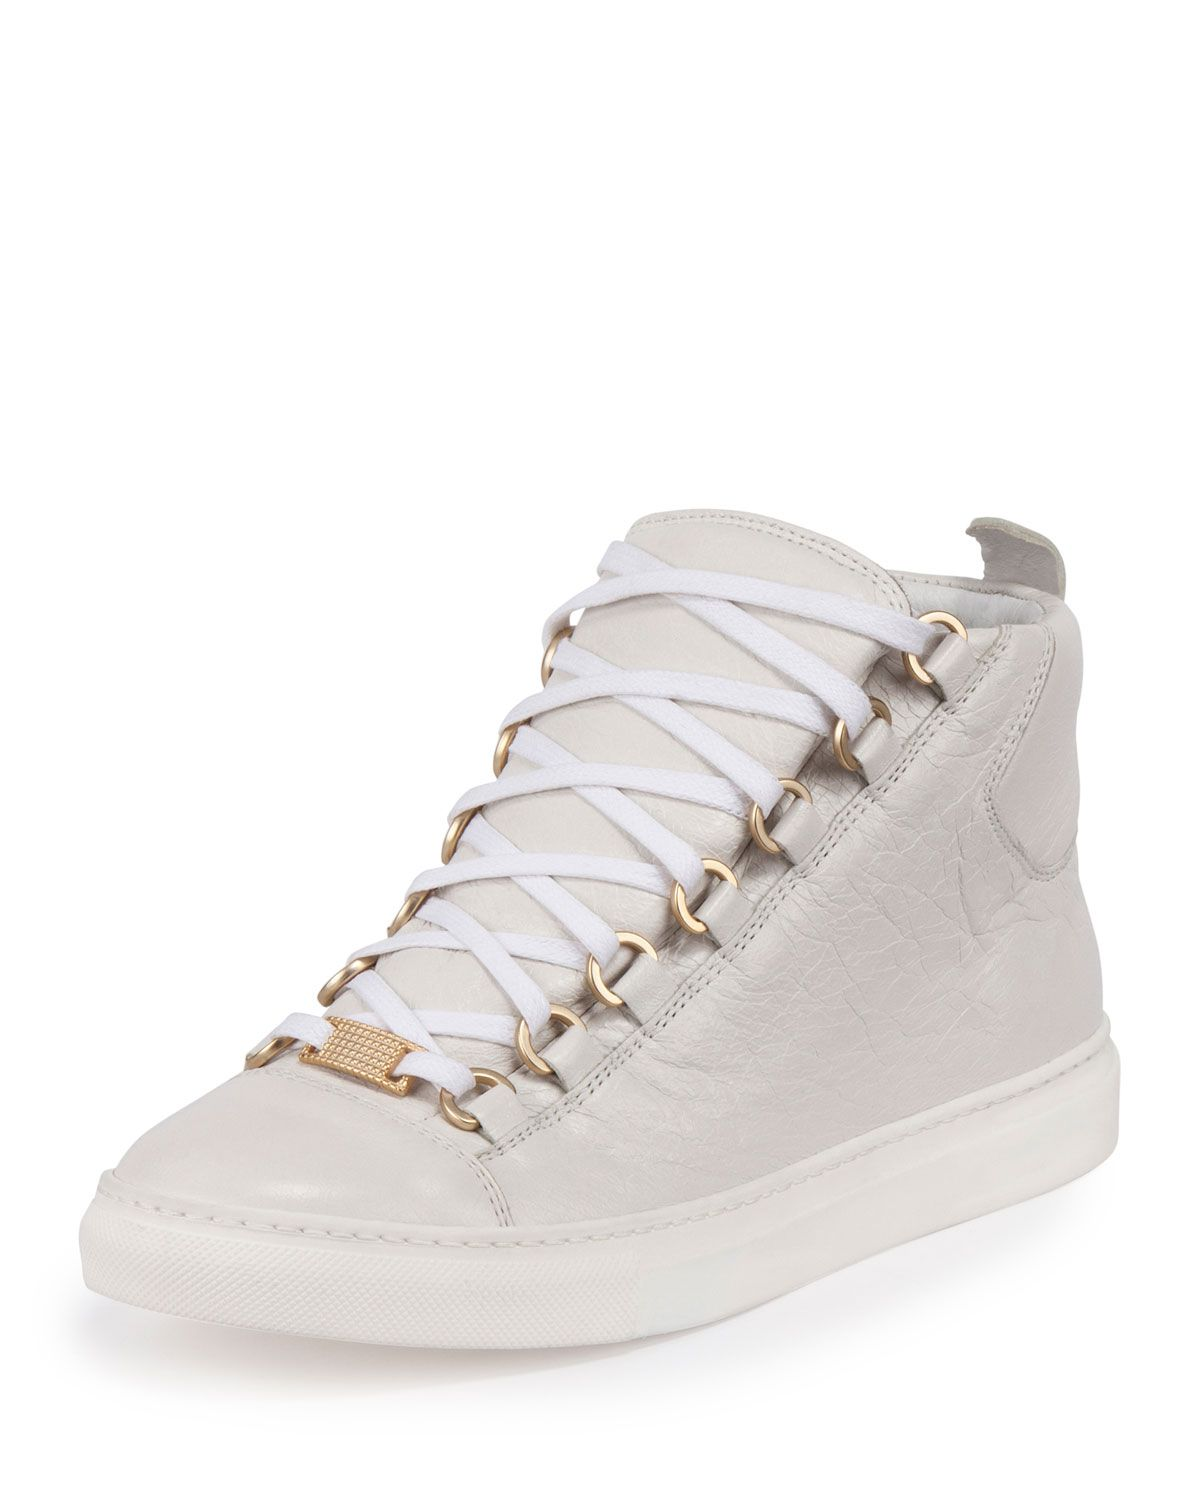 d310b9c8f7735 Arena Leather High-Top Sneaker